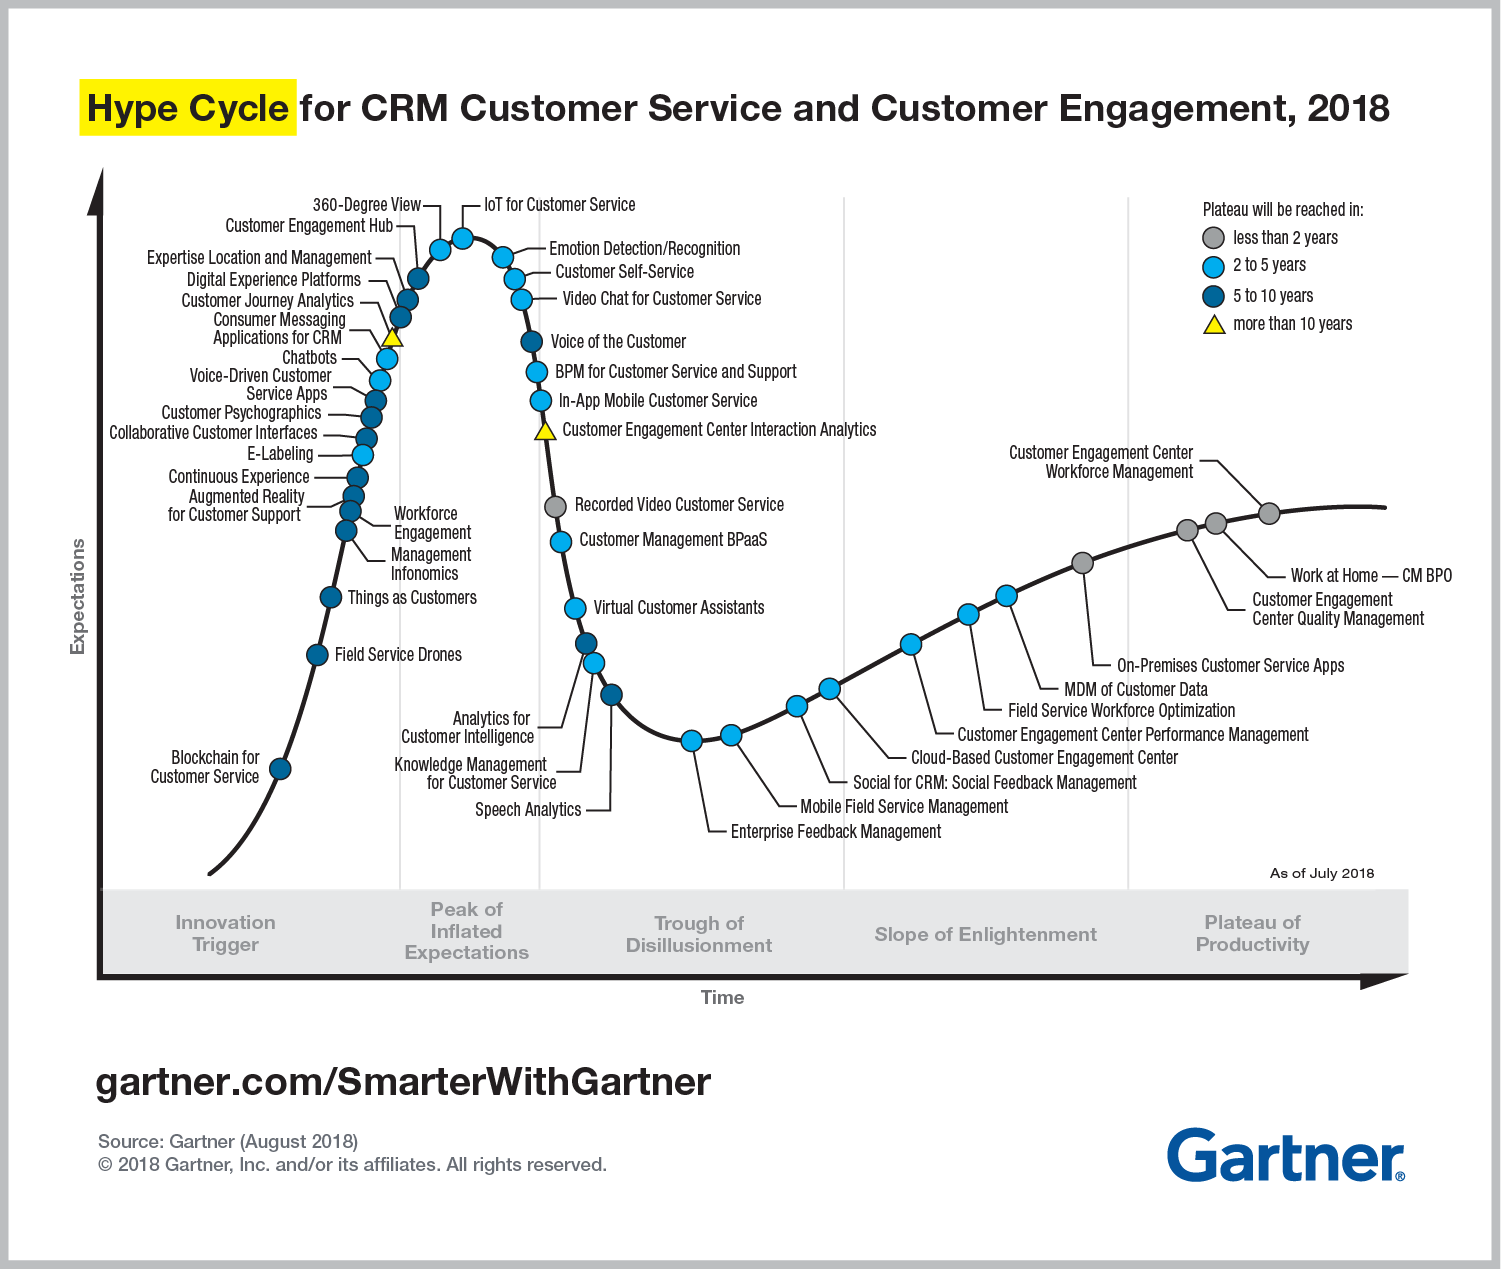 Gartner Hype Cycle for CRM Customer Service and Customer Engagement 2018